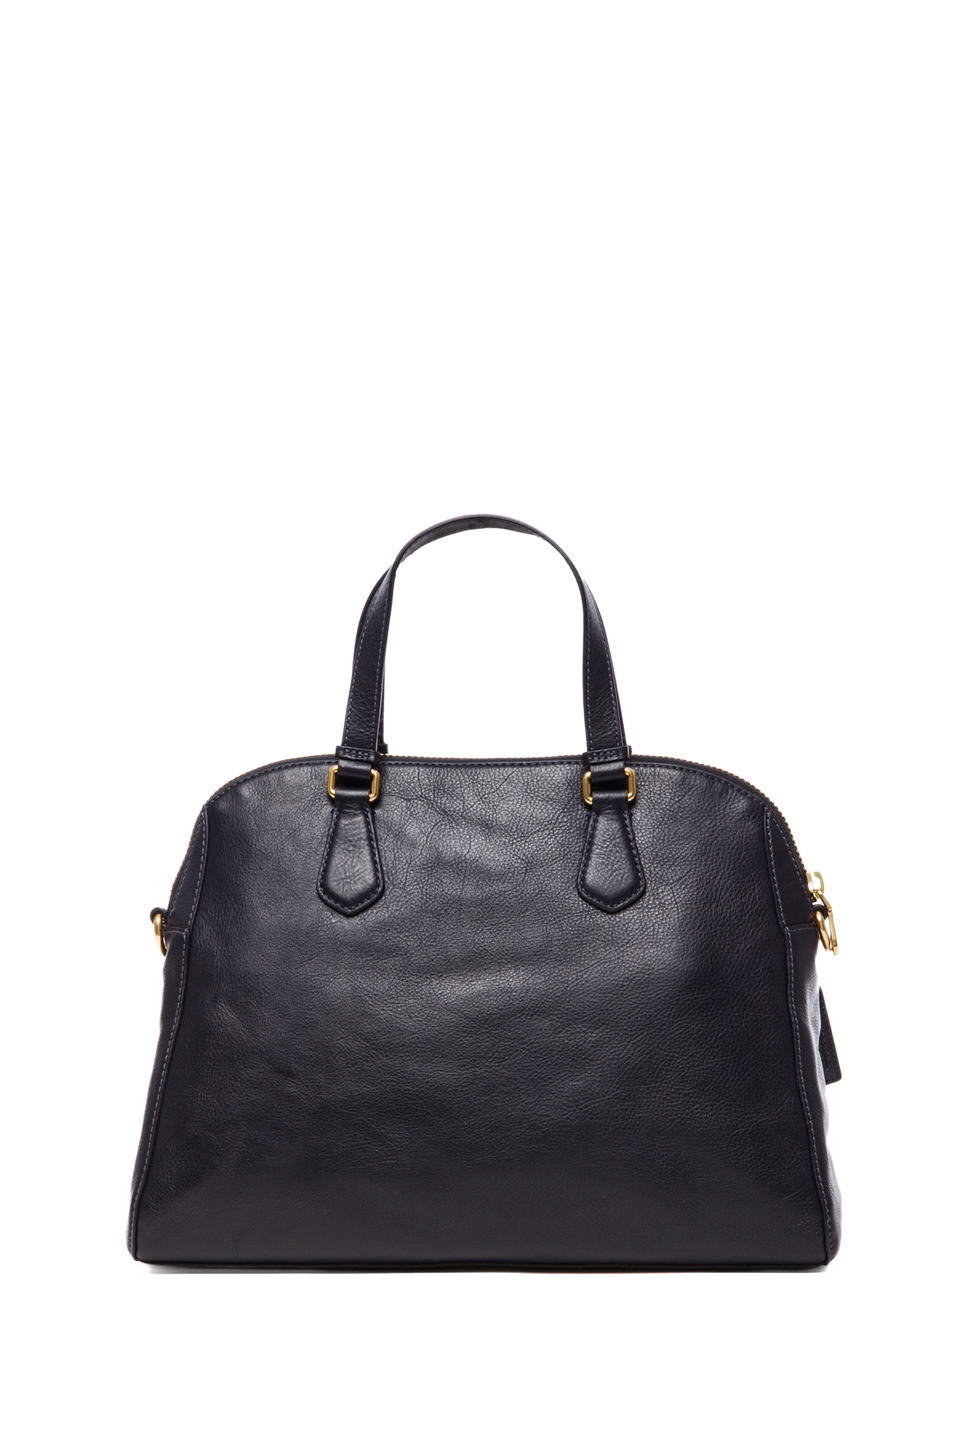 Lyst - Marc By Marc Jacobs Globetrotter Calamity Rei Bag in Navy in Blue e1fcdaa25beef